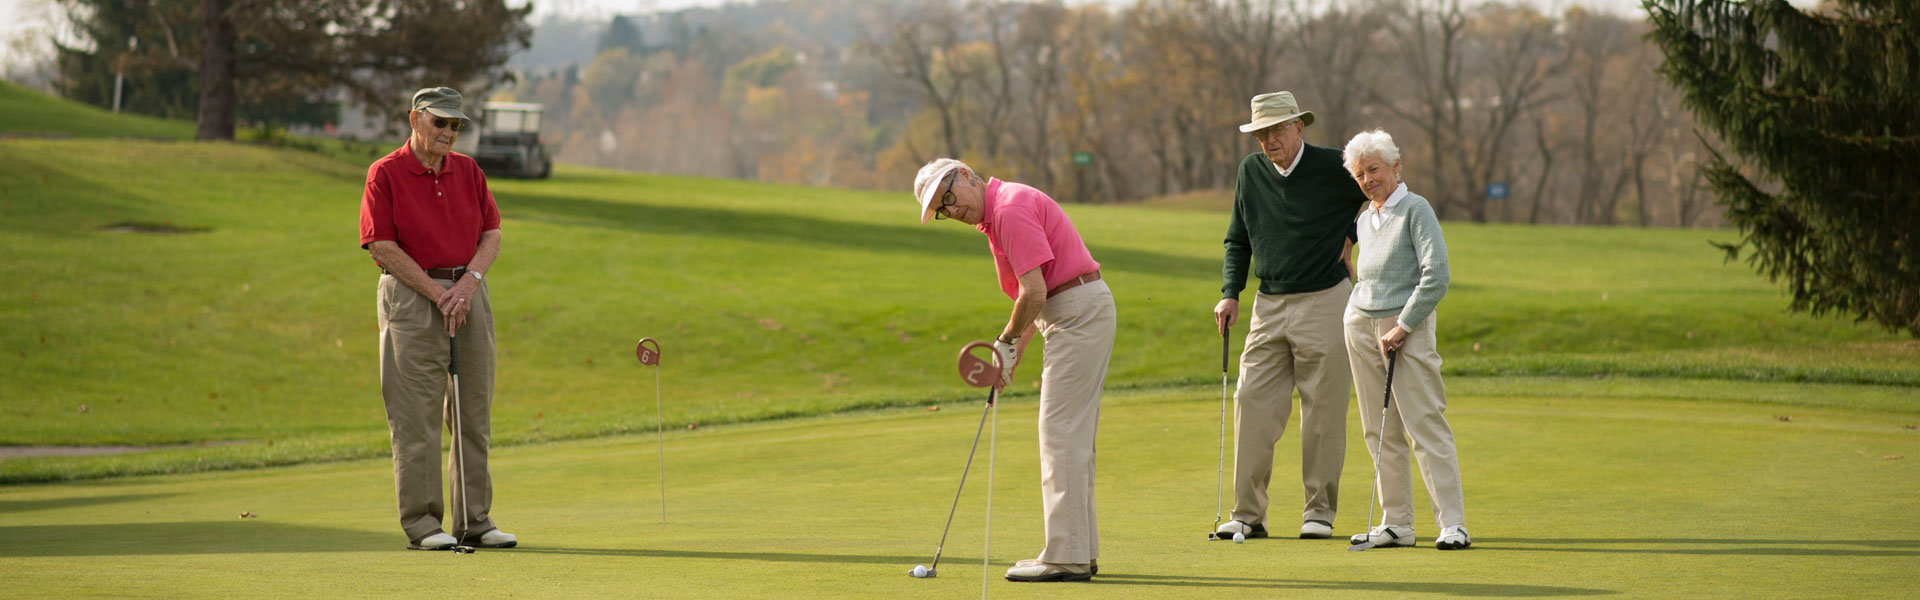 A group of seniors playing golf on the golf course at their senior living community